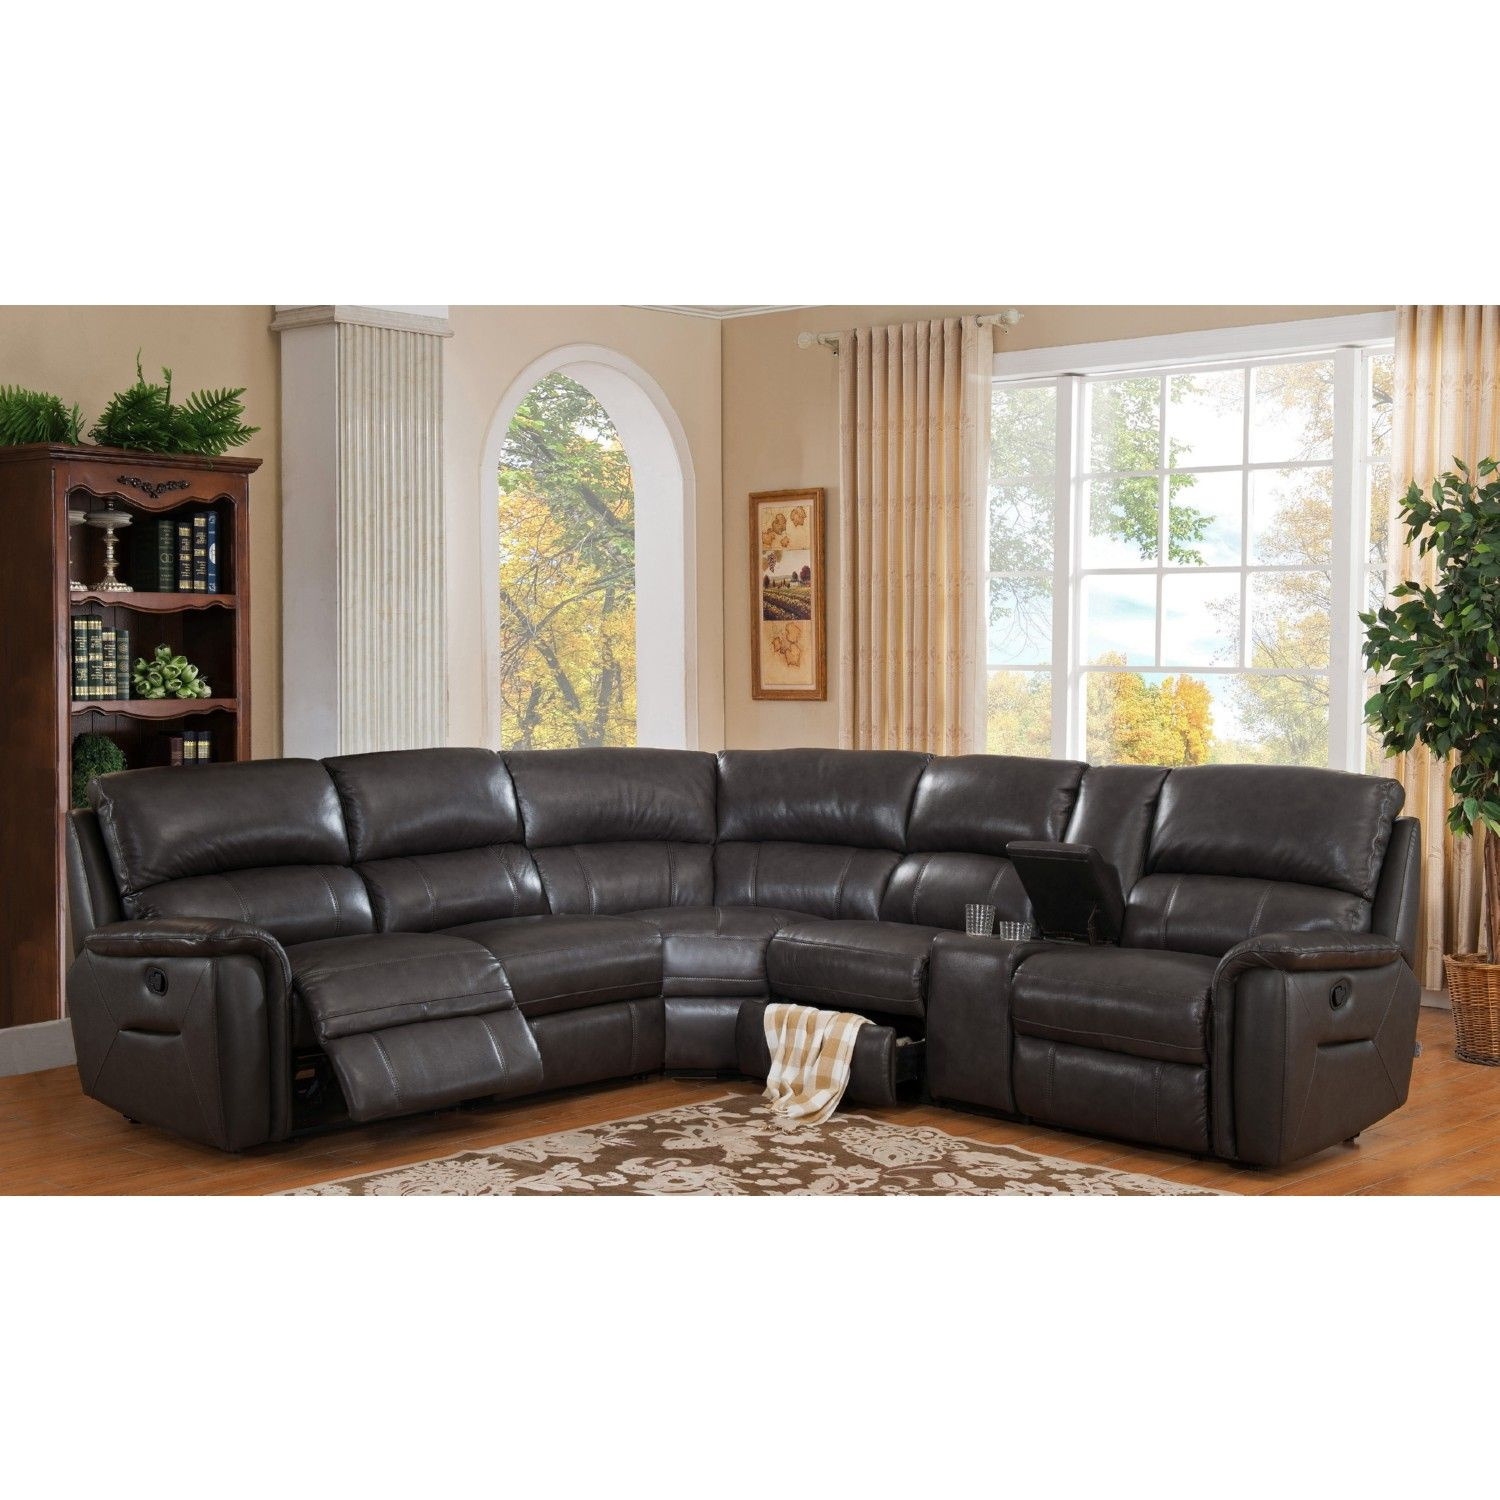 Hydeline Amax Camino 100 Leather Reclining Sofa Sectional Charcoal Grey Sectional Sofa With Recliner Reclining Sectional Leather Reclining Sectional